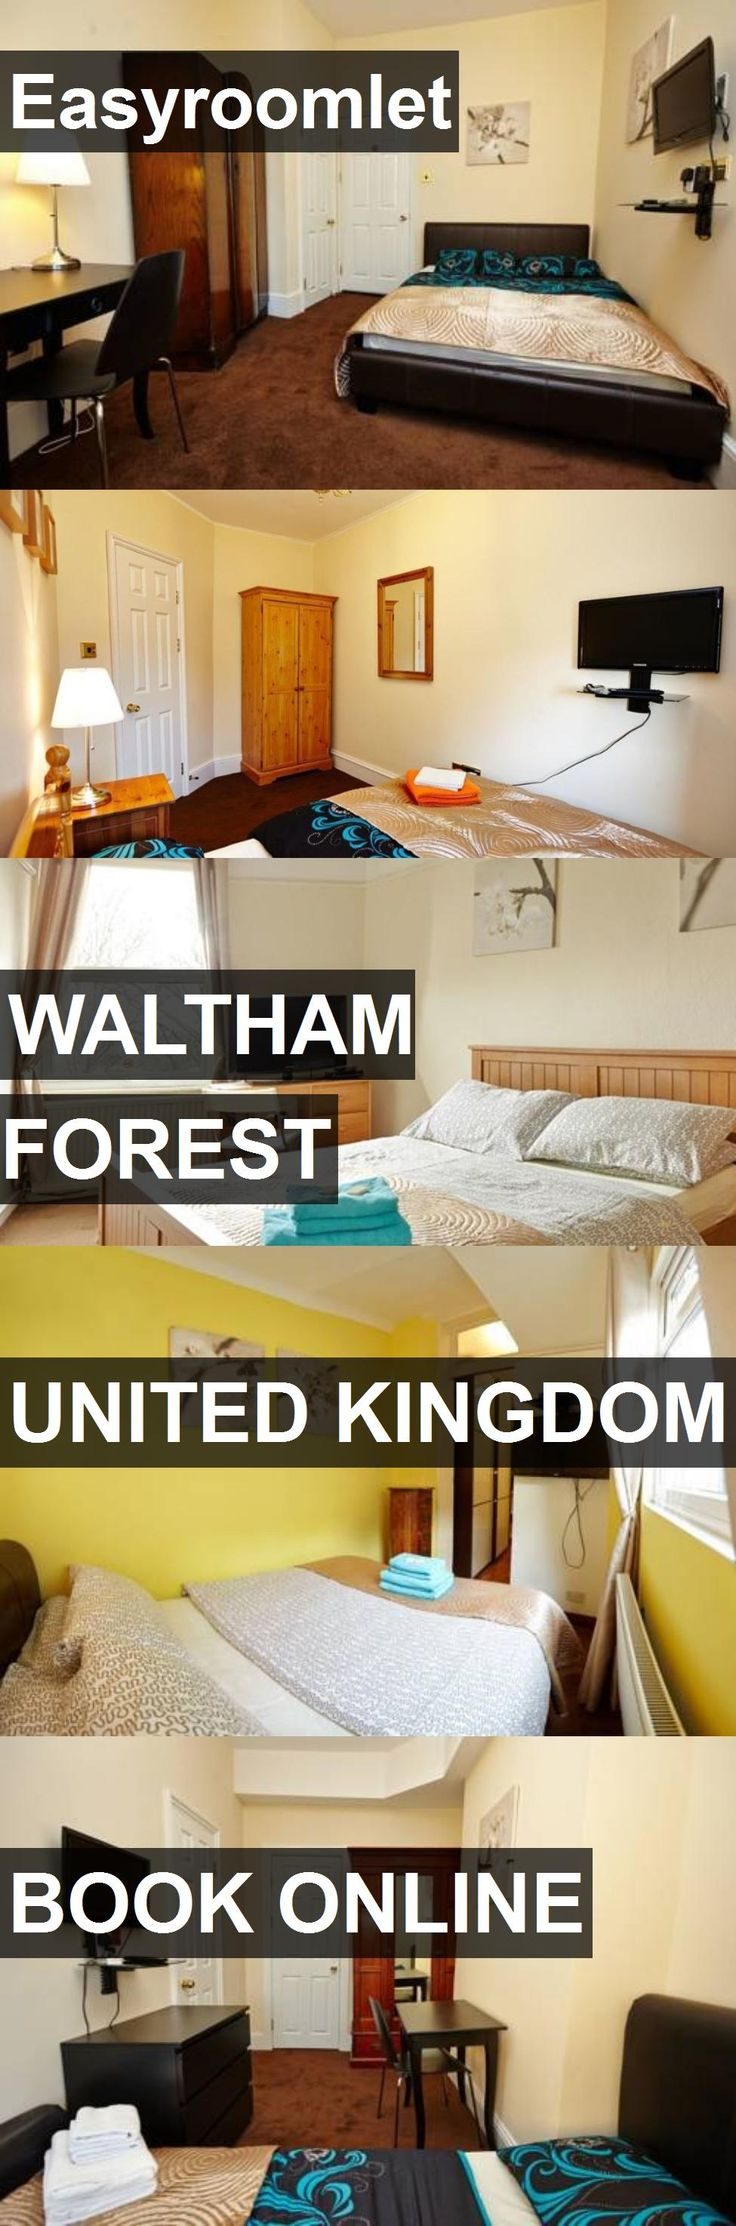 Hotel Easyroomlet in Waltham Forest, United Kingdom. For more information, photos, reviews and best prices please follow the link. #UnitedKingdom #WalthamForest #Easyroomlet #hotel #travel #vacation